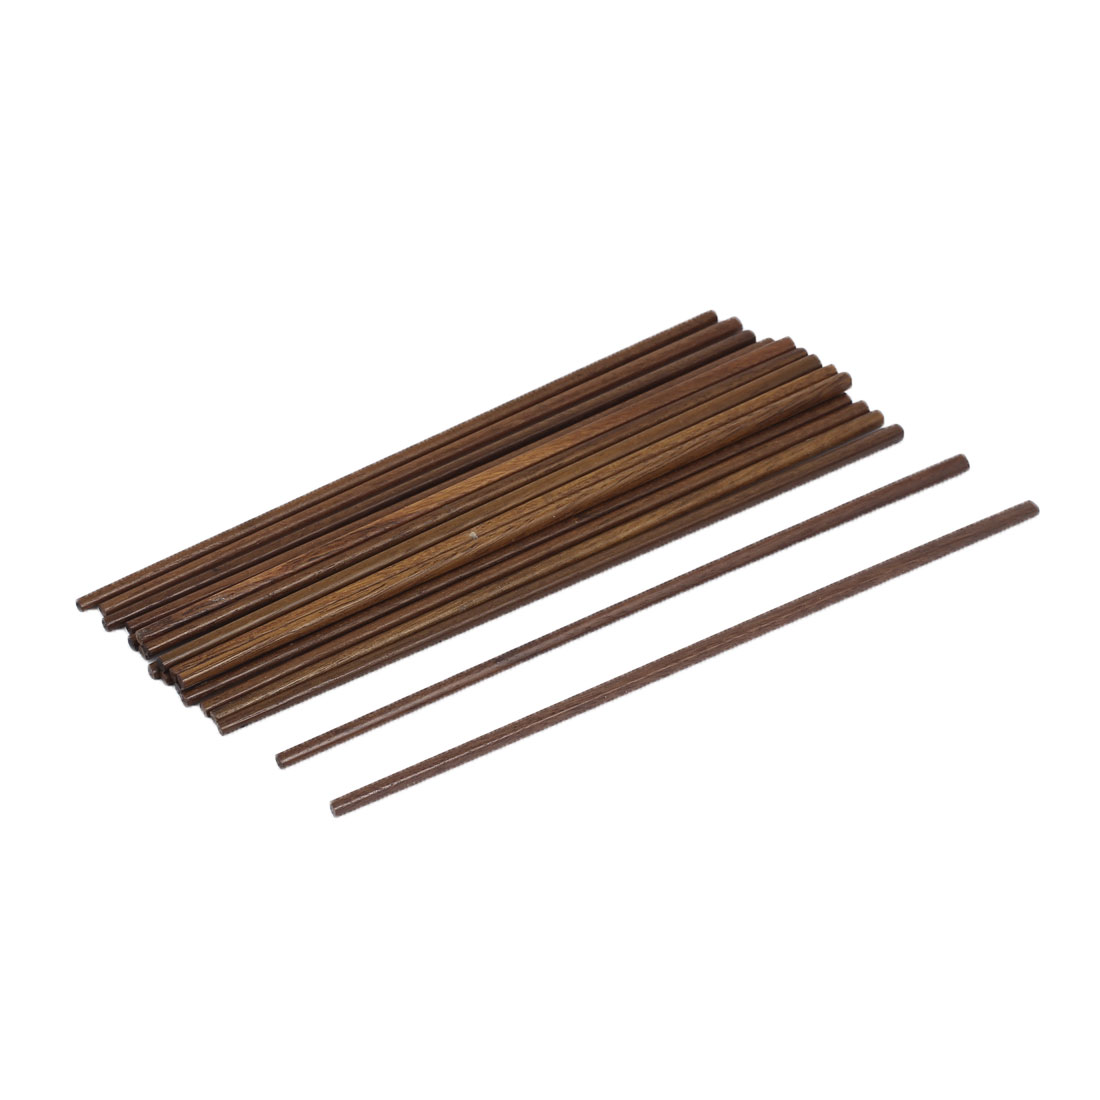 "Resterant Kitchen Chocolate Color Wooden Chopsticks Tableware 9.6"" 24.5cm Length 10 Pairs"